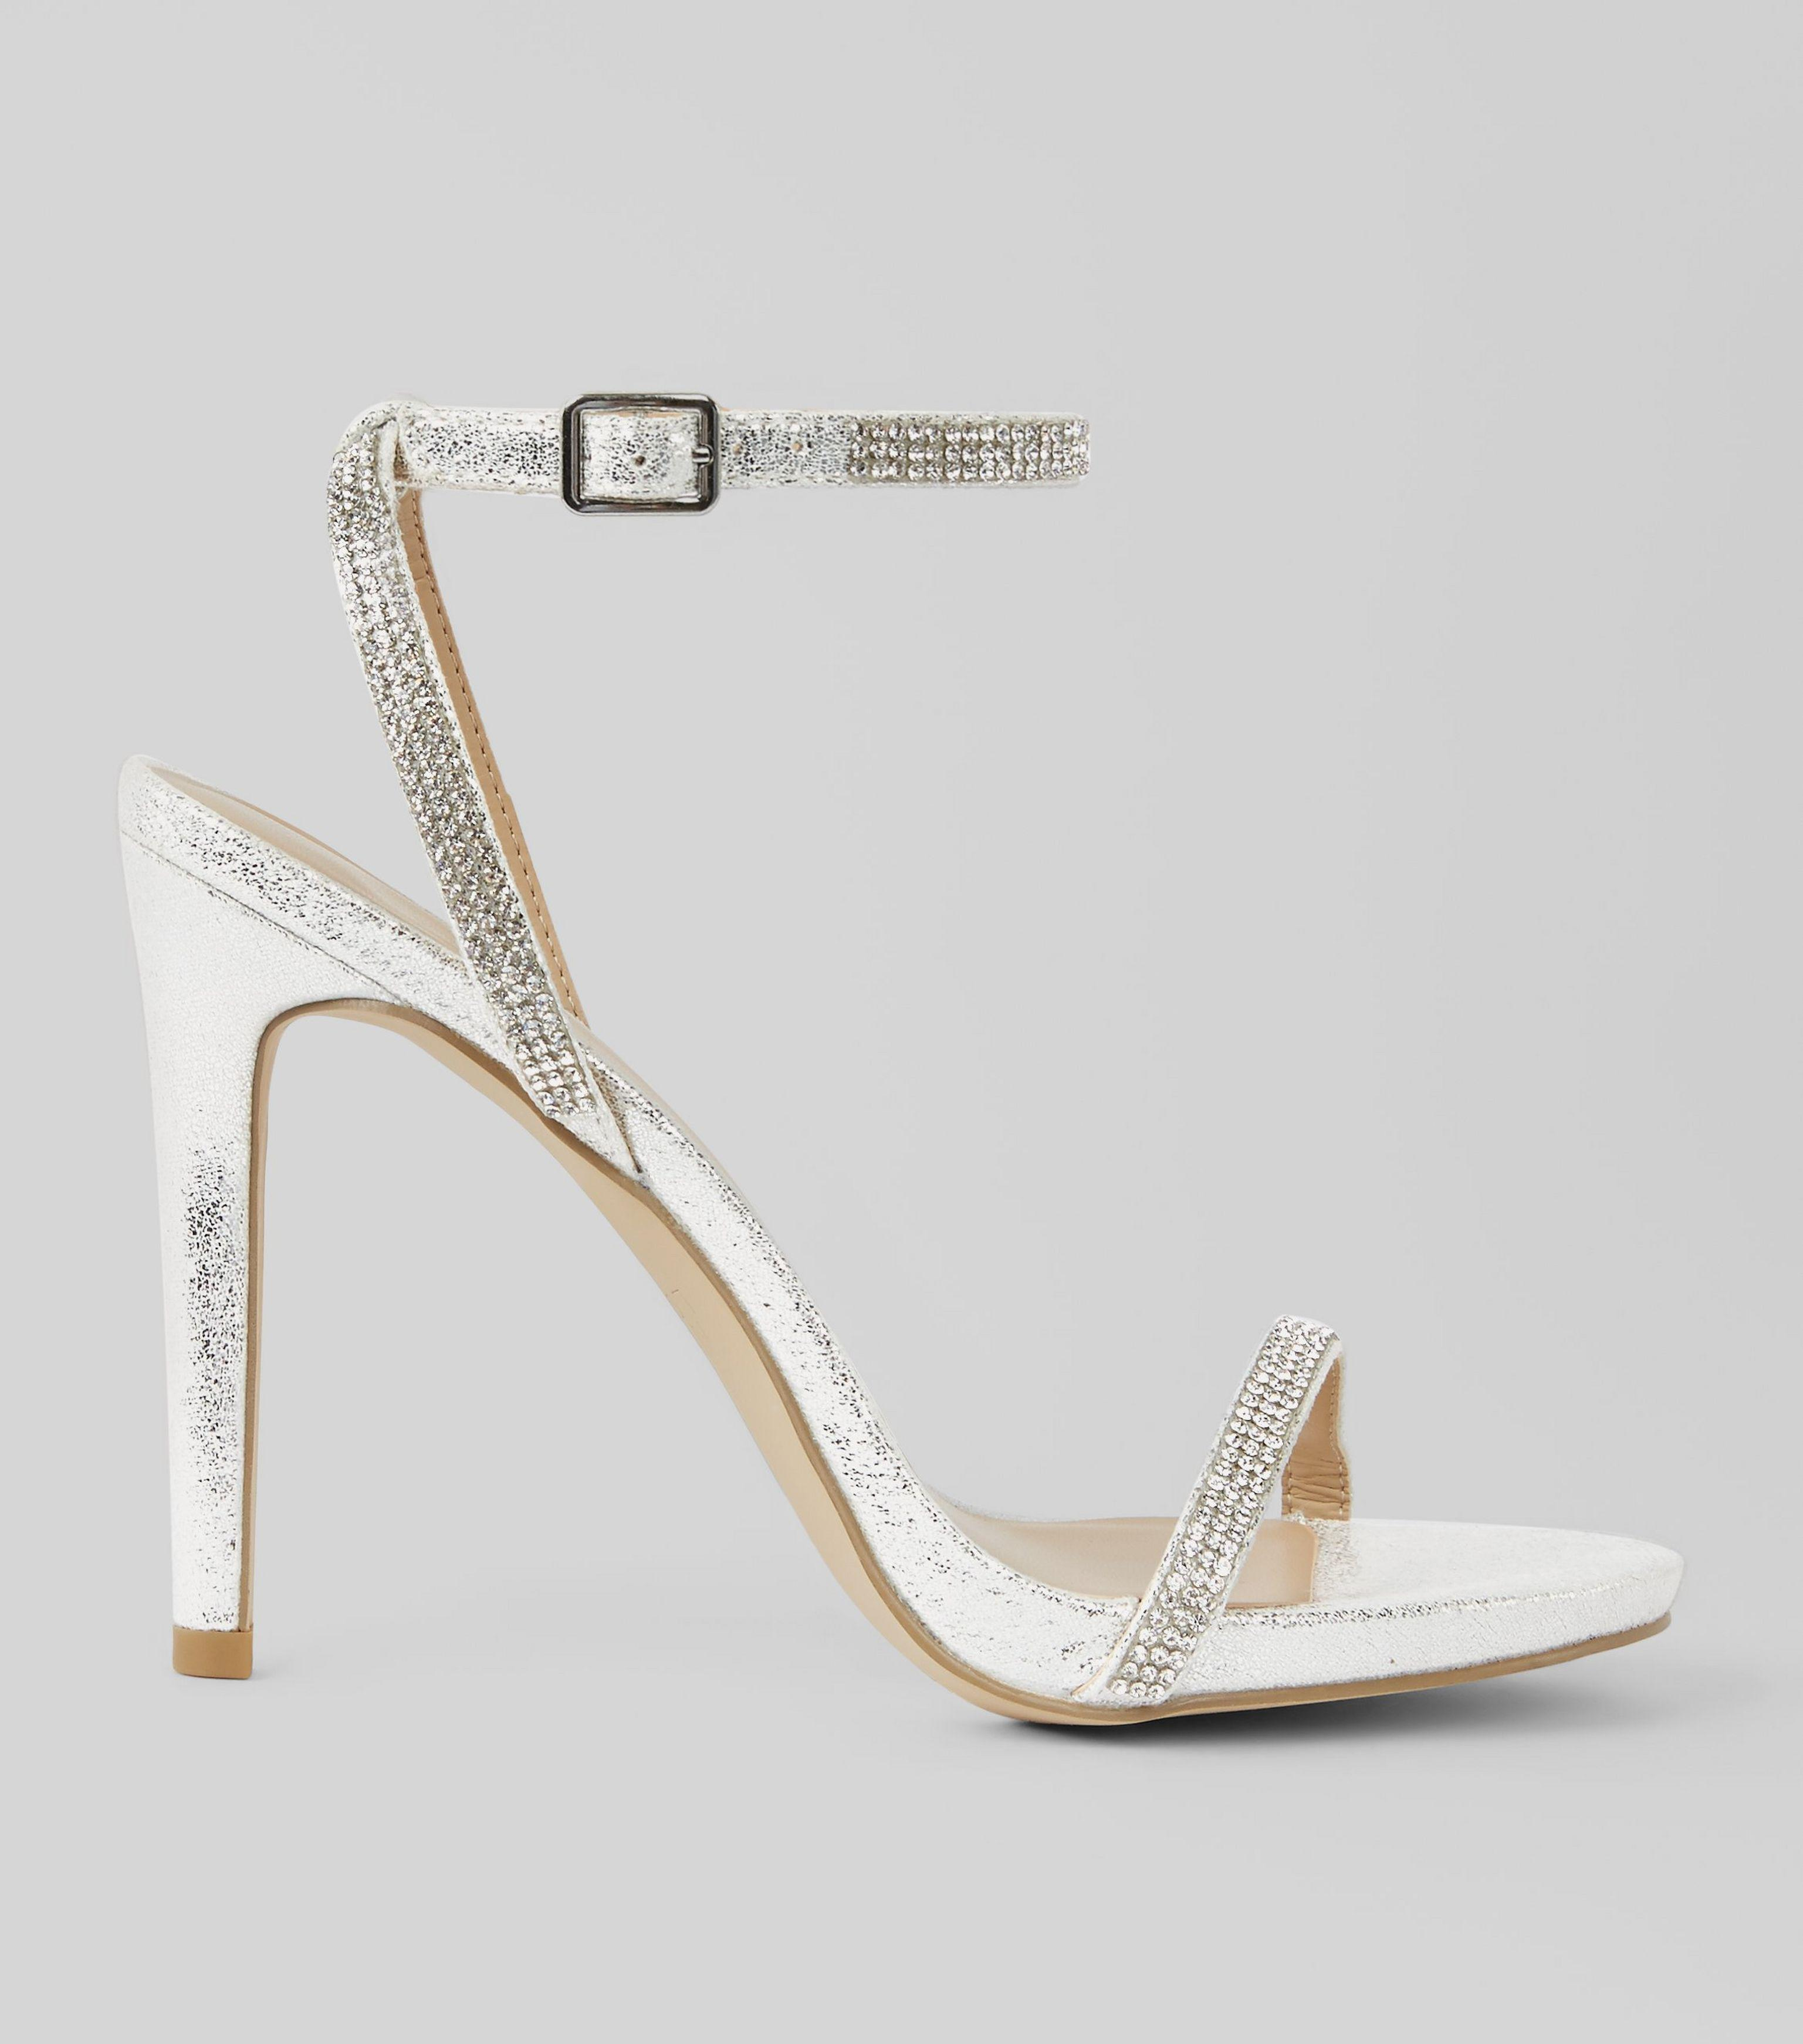 6d239d467f06 New Look Silver Diamante Embellished Heeled Sandals in Metallic - Lyst